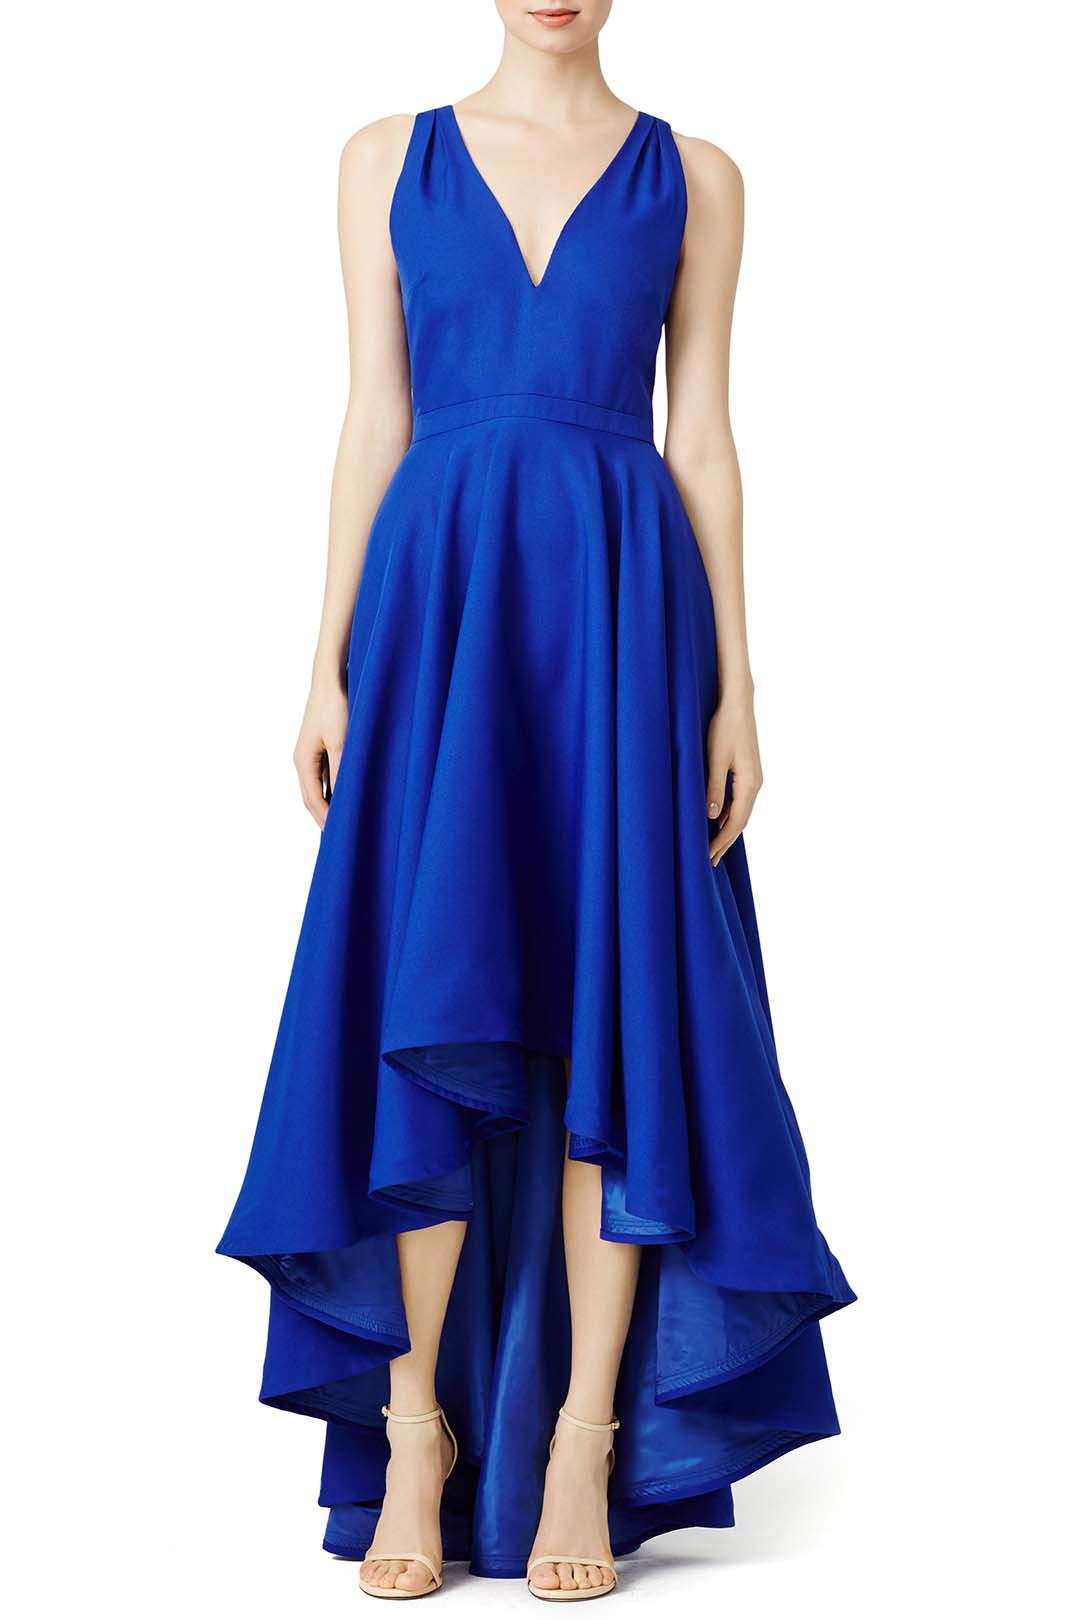 Rent The Runway Cobalt Marilyn Blue Masquerade Ball Gown